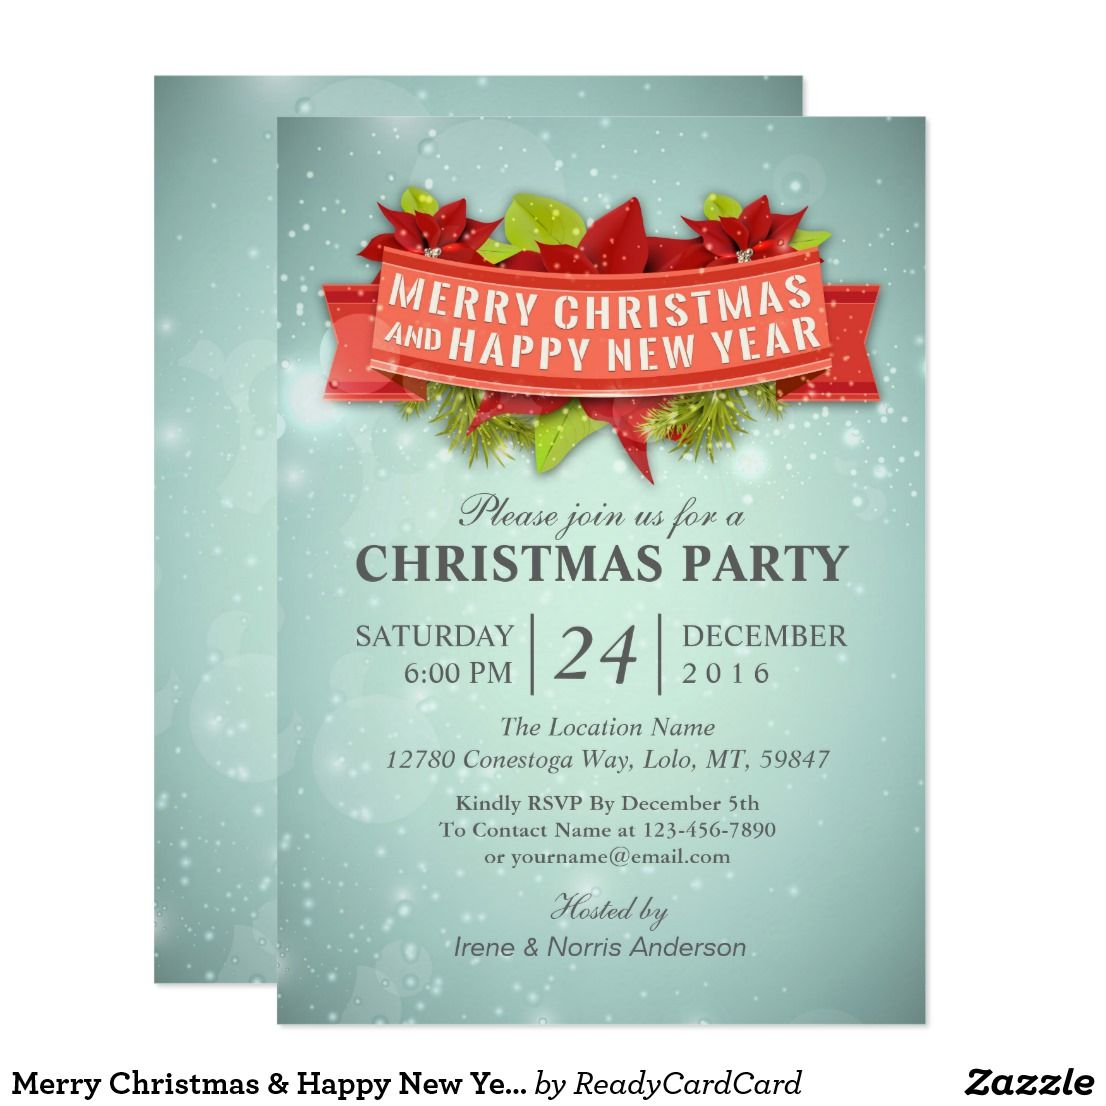 merry christmas happy new year party invitation chic botanical floral poinsettia berry and pines